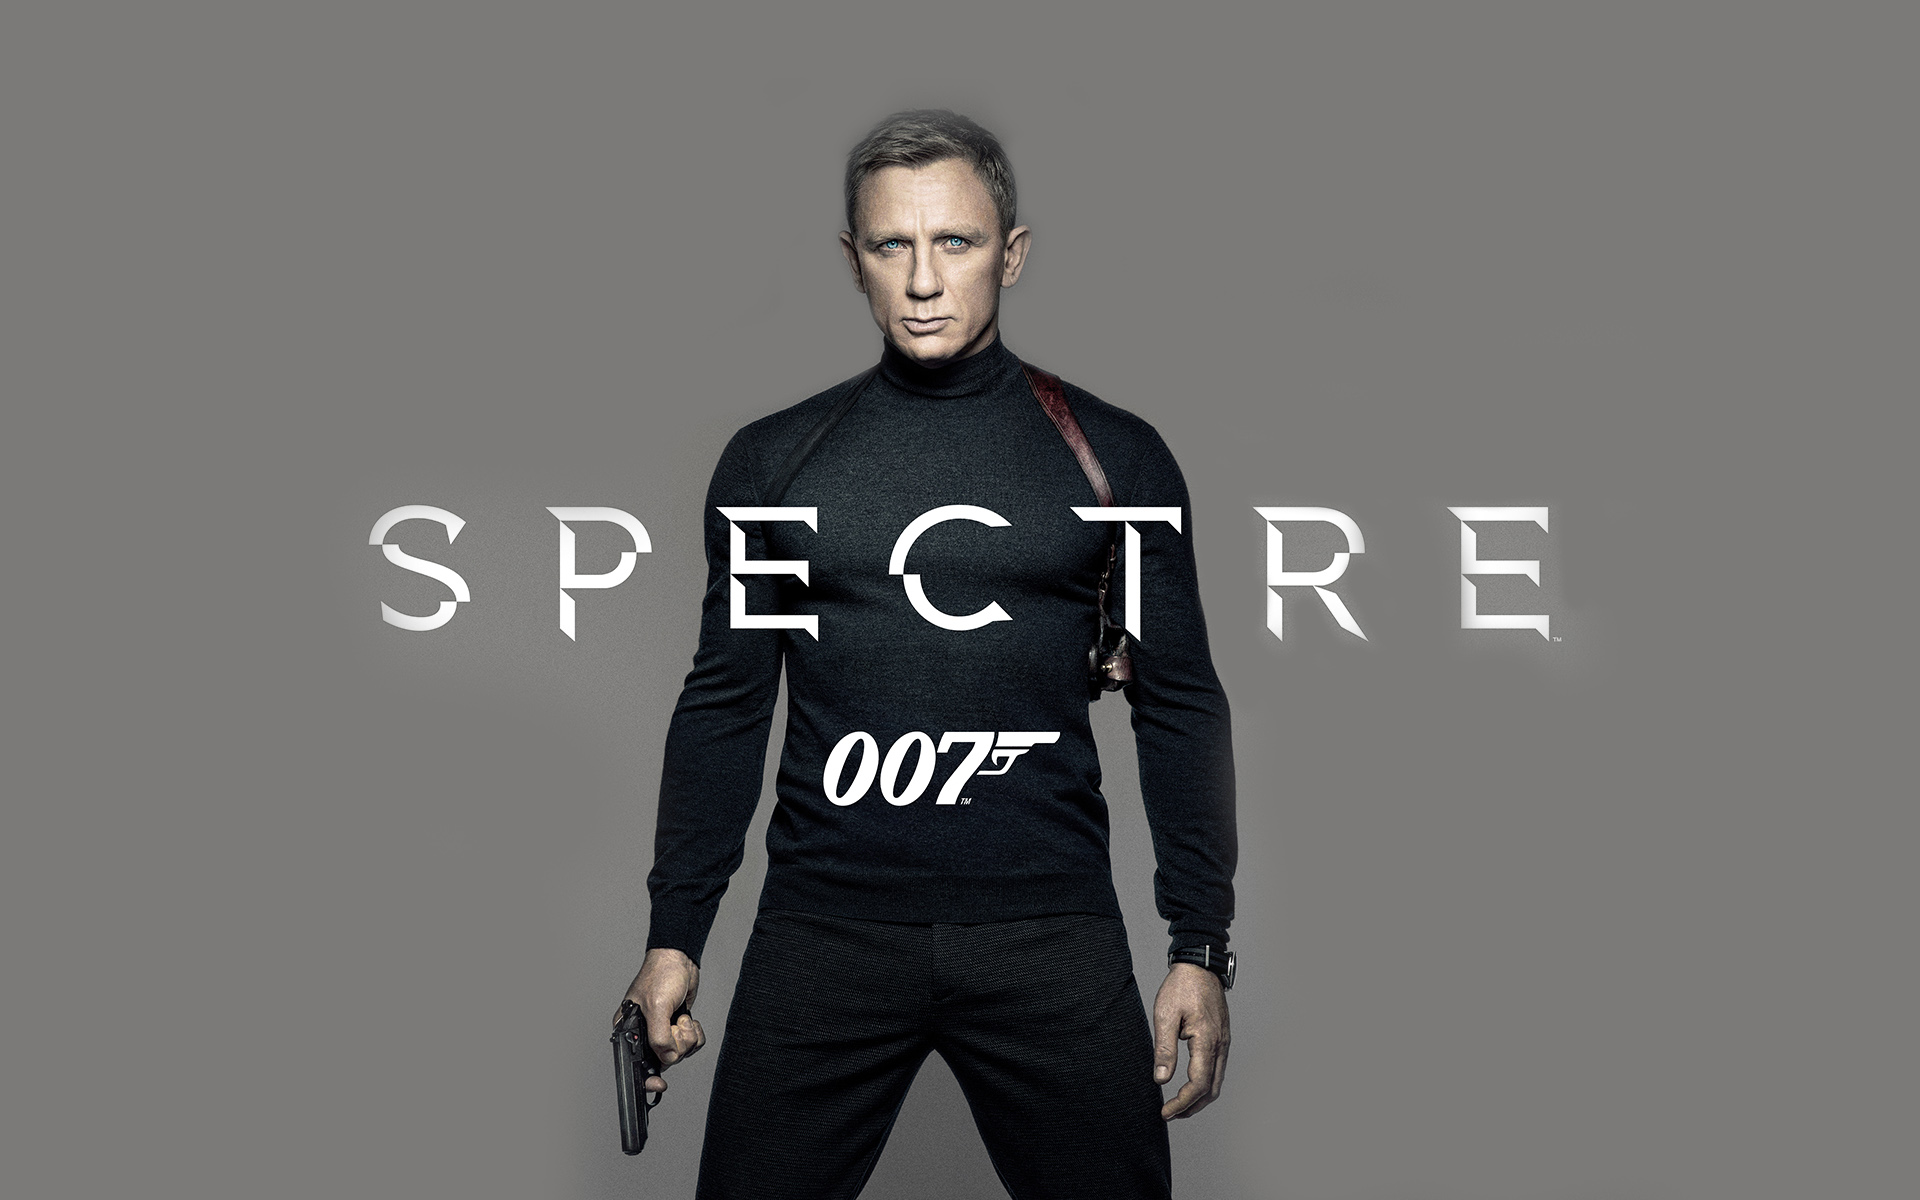 spectre 007 movies hd wallpapers download. Black Bedroom Furniture Sets. Home Design Ideas